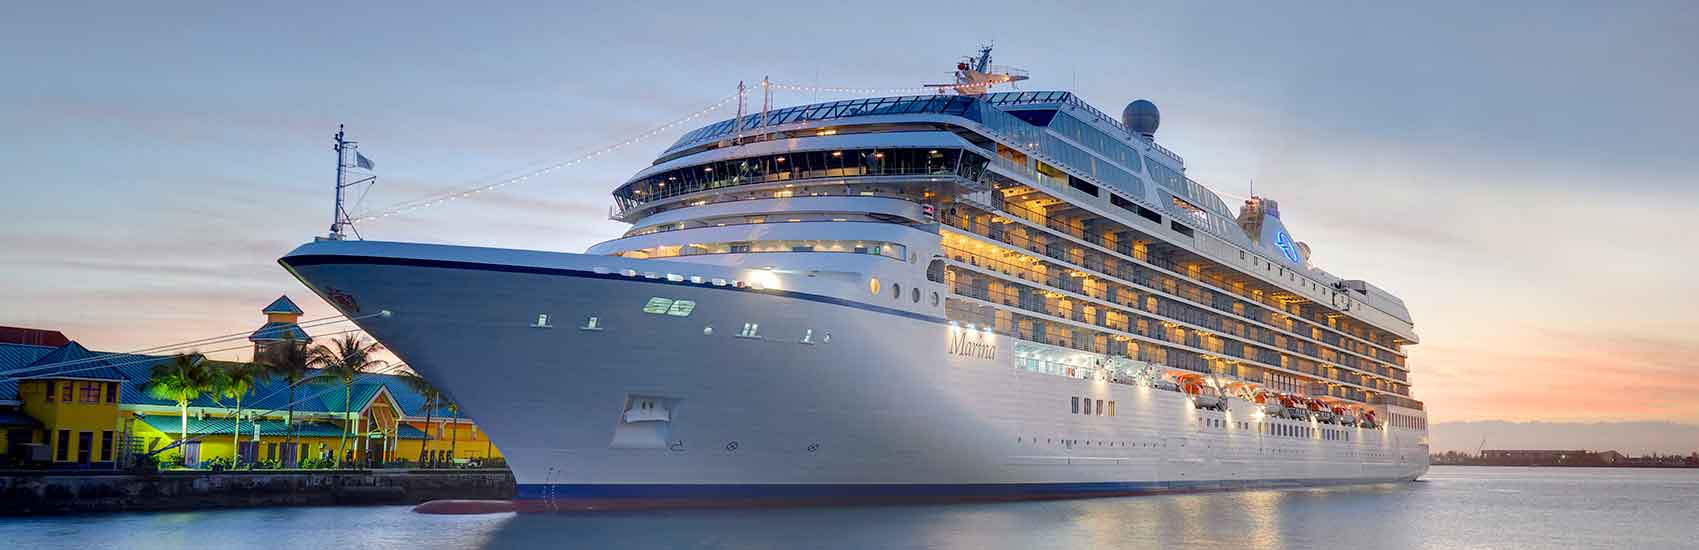 Offre Virtuoso exclusive d'Oceania Cruises 0